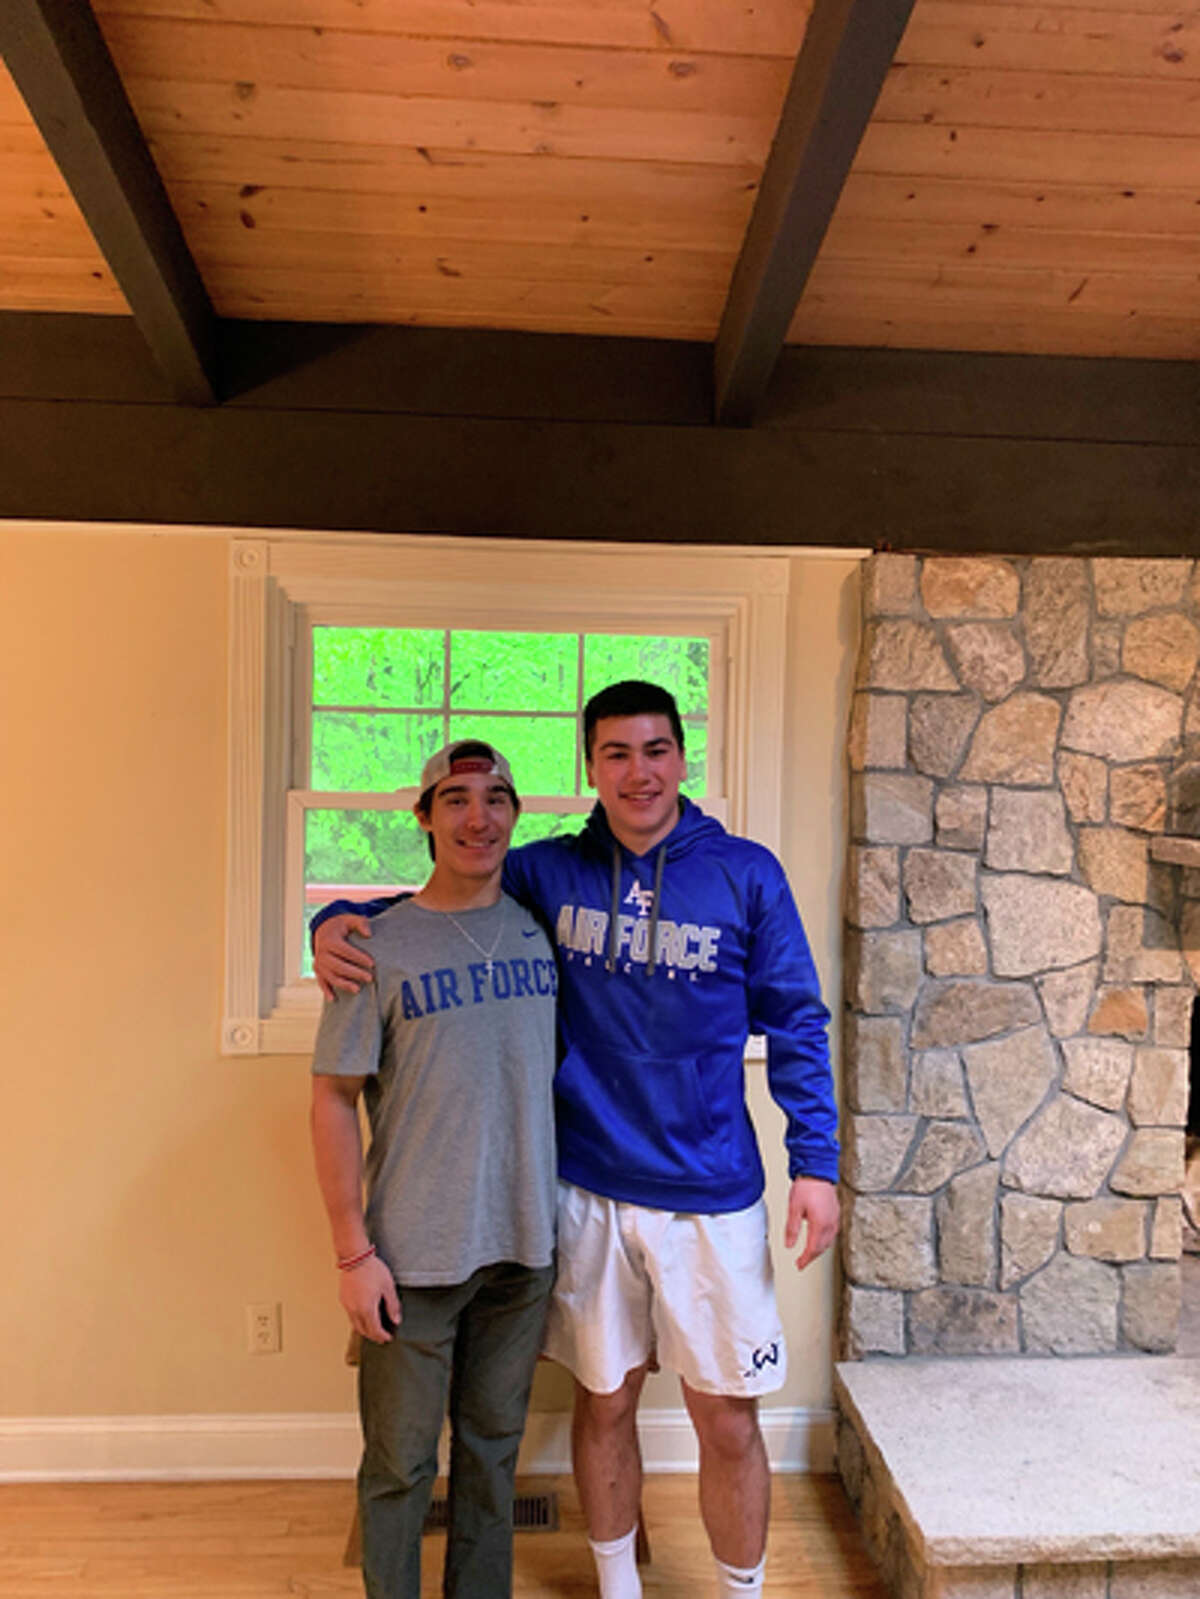 Ethan Grandolfo and Tyler Previte have both committed to playing lacrosse at the Air Force Academy. - contributed photo